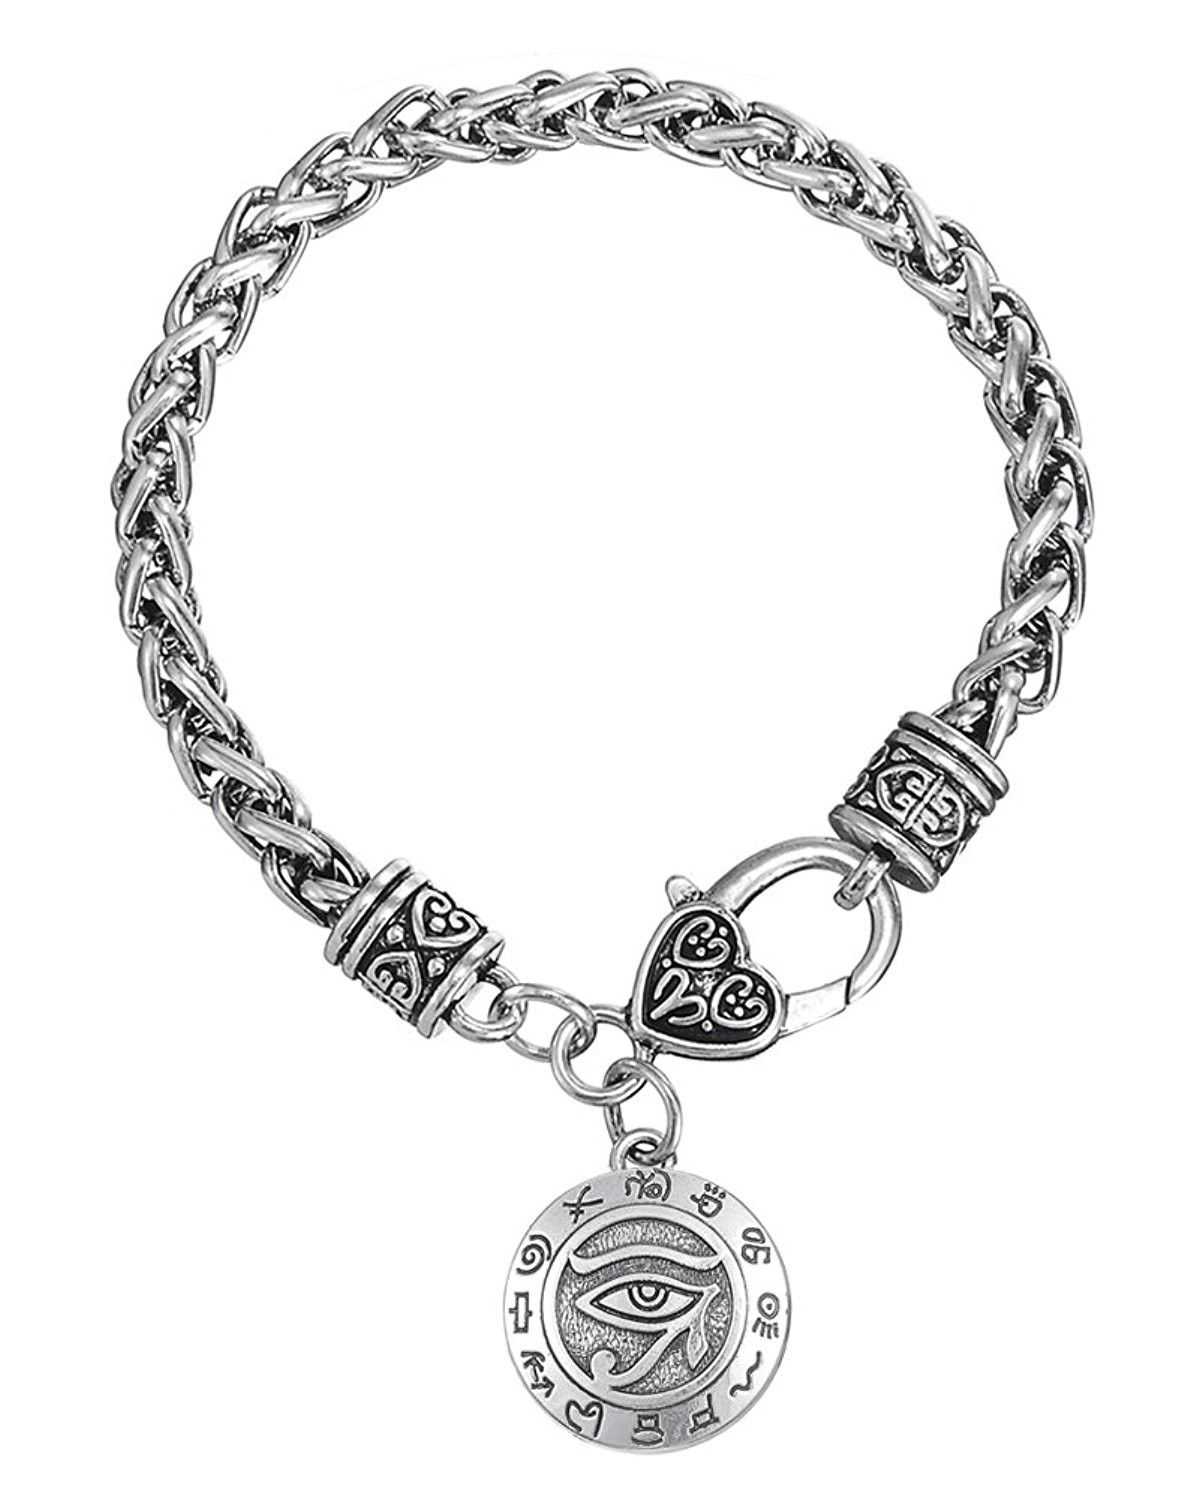 Tioneer Stainless Steel Tree of Life Symbols Heart Charm Bracelet /& Necklace